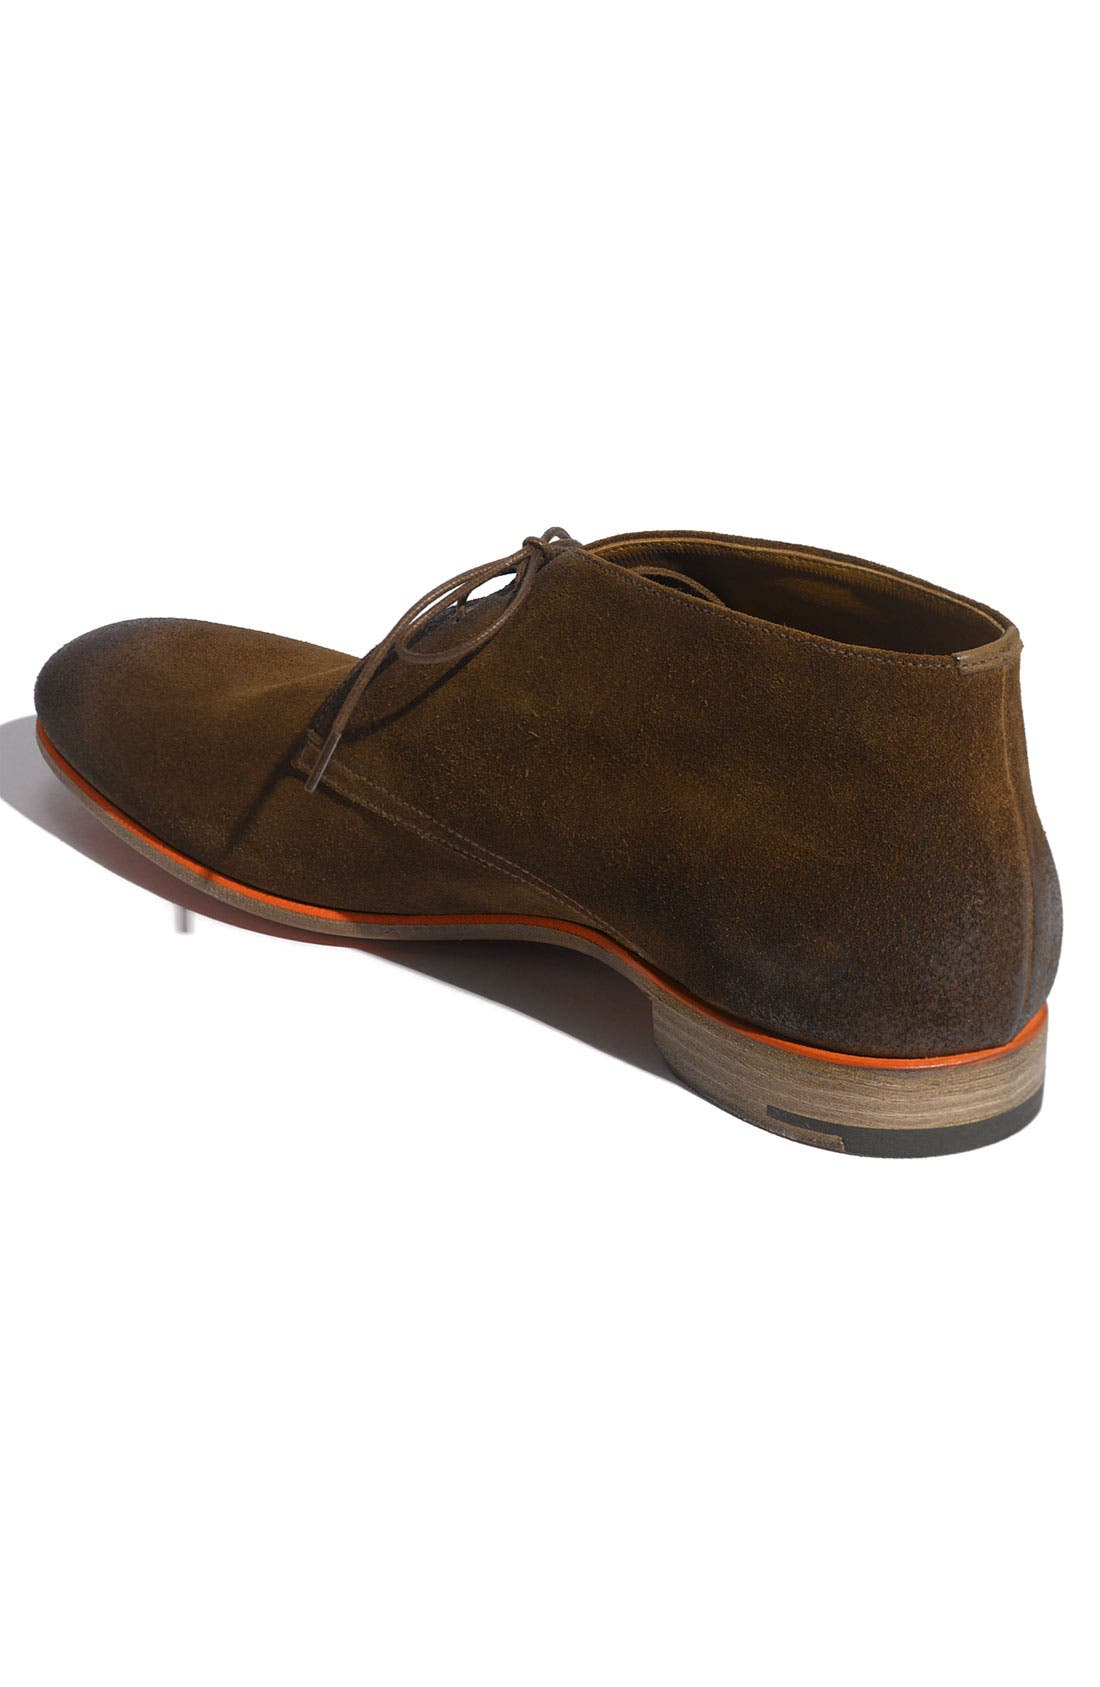 Alternate Image 2  - Prada Plain Toe Chukka